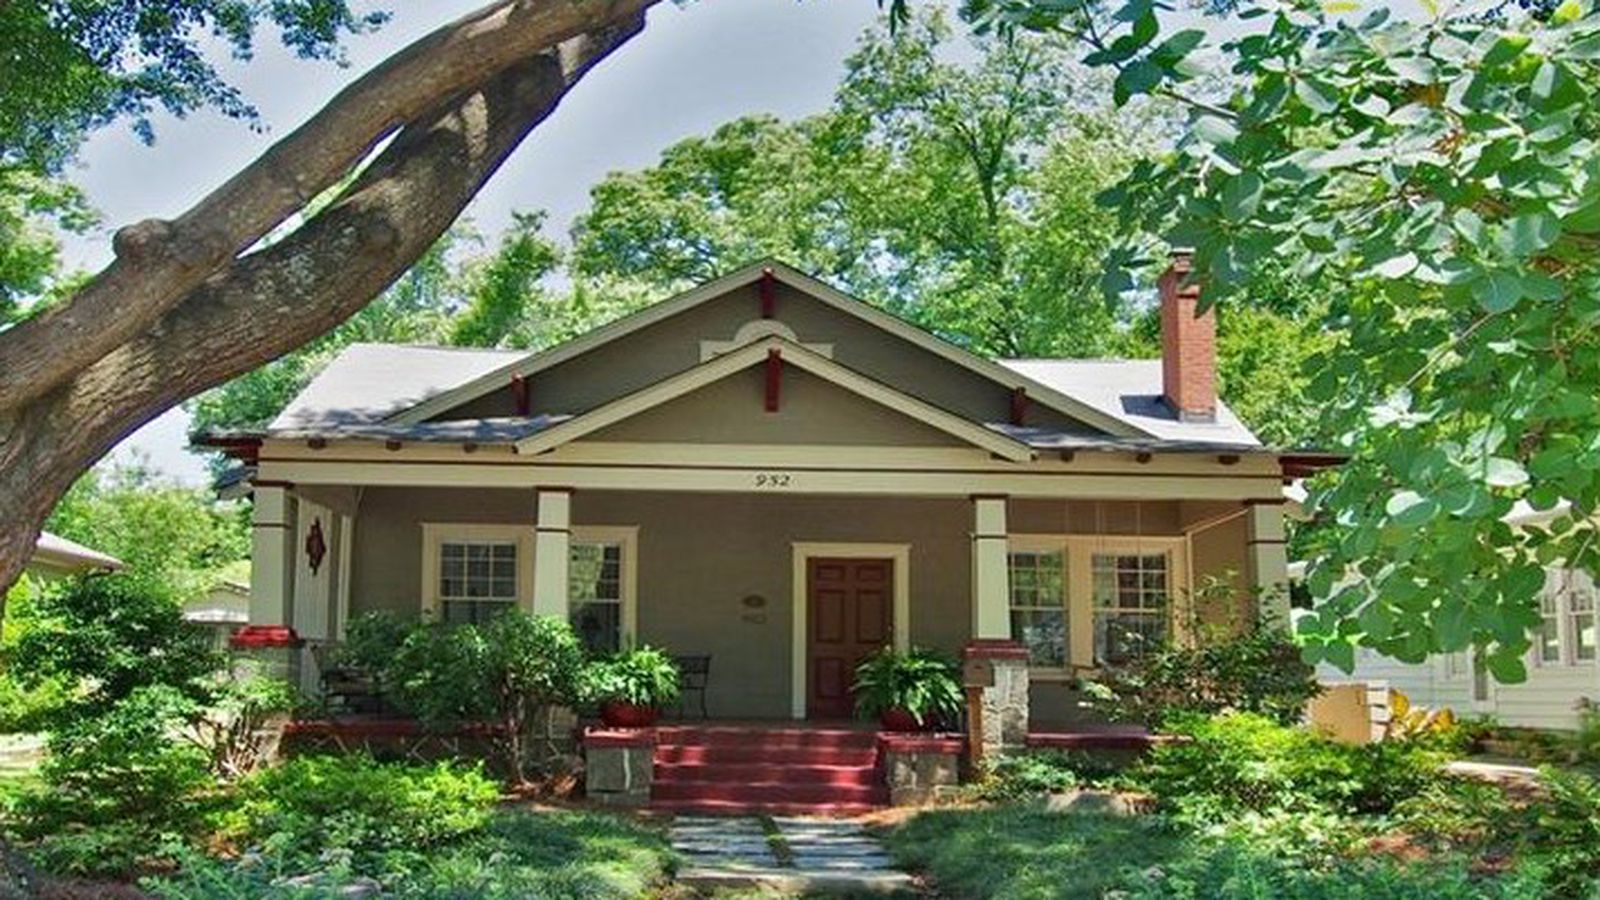 Historic 1915 craftsman hopes for 849k in virginia for Craftsman style homes for sale in northern virginia